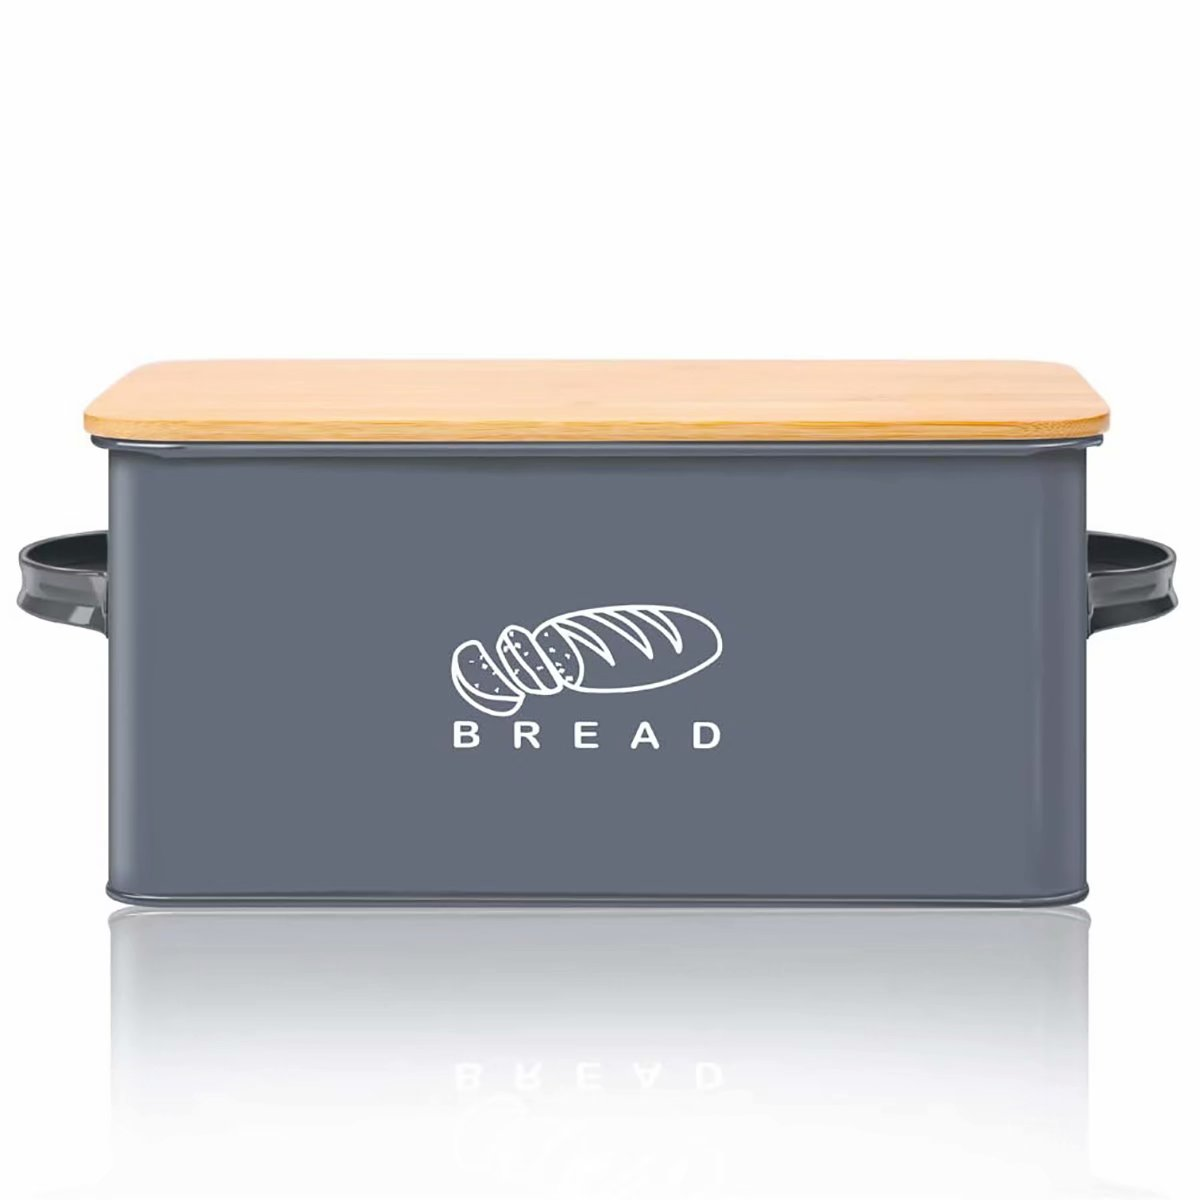 Bread Box For Kitchen Counter G A Homefavor Bread Bin Bread Holder With Bamboo Lid Kitchen Food Storage Containers Cake Keeper 11 56 6 7 5 5 Grey Walmart Com Walmart Com